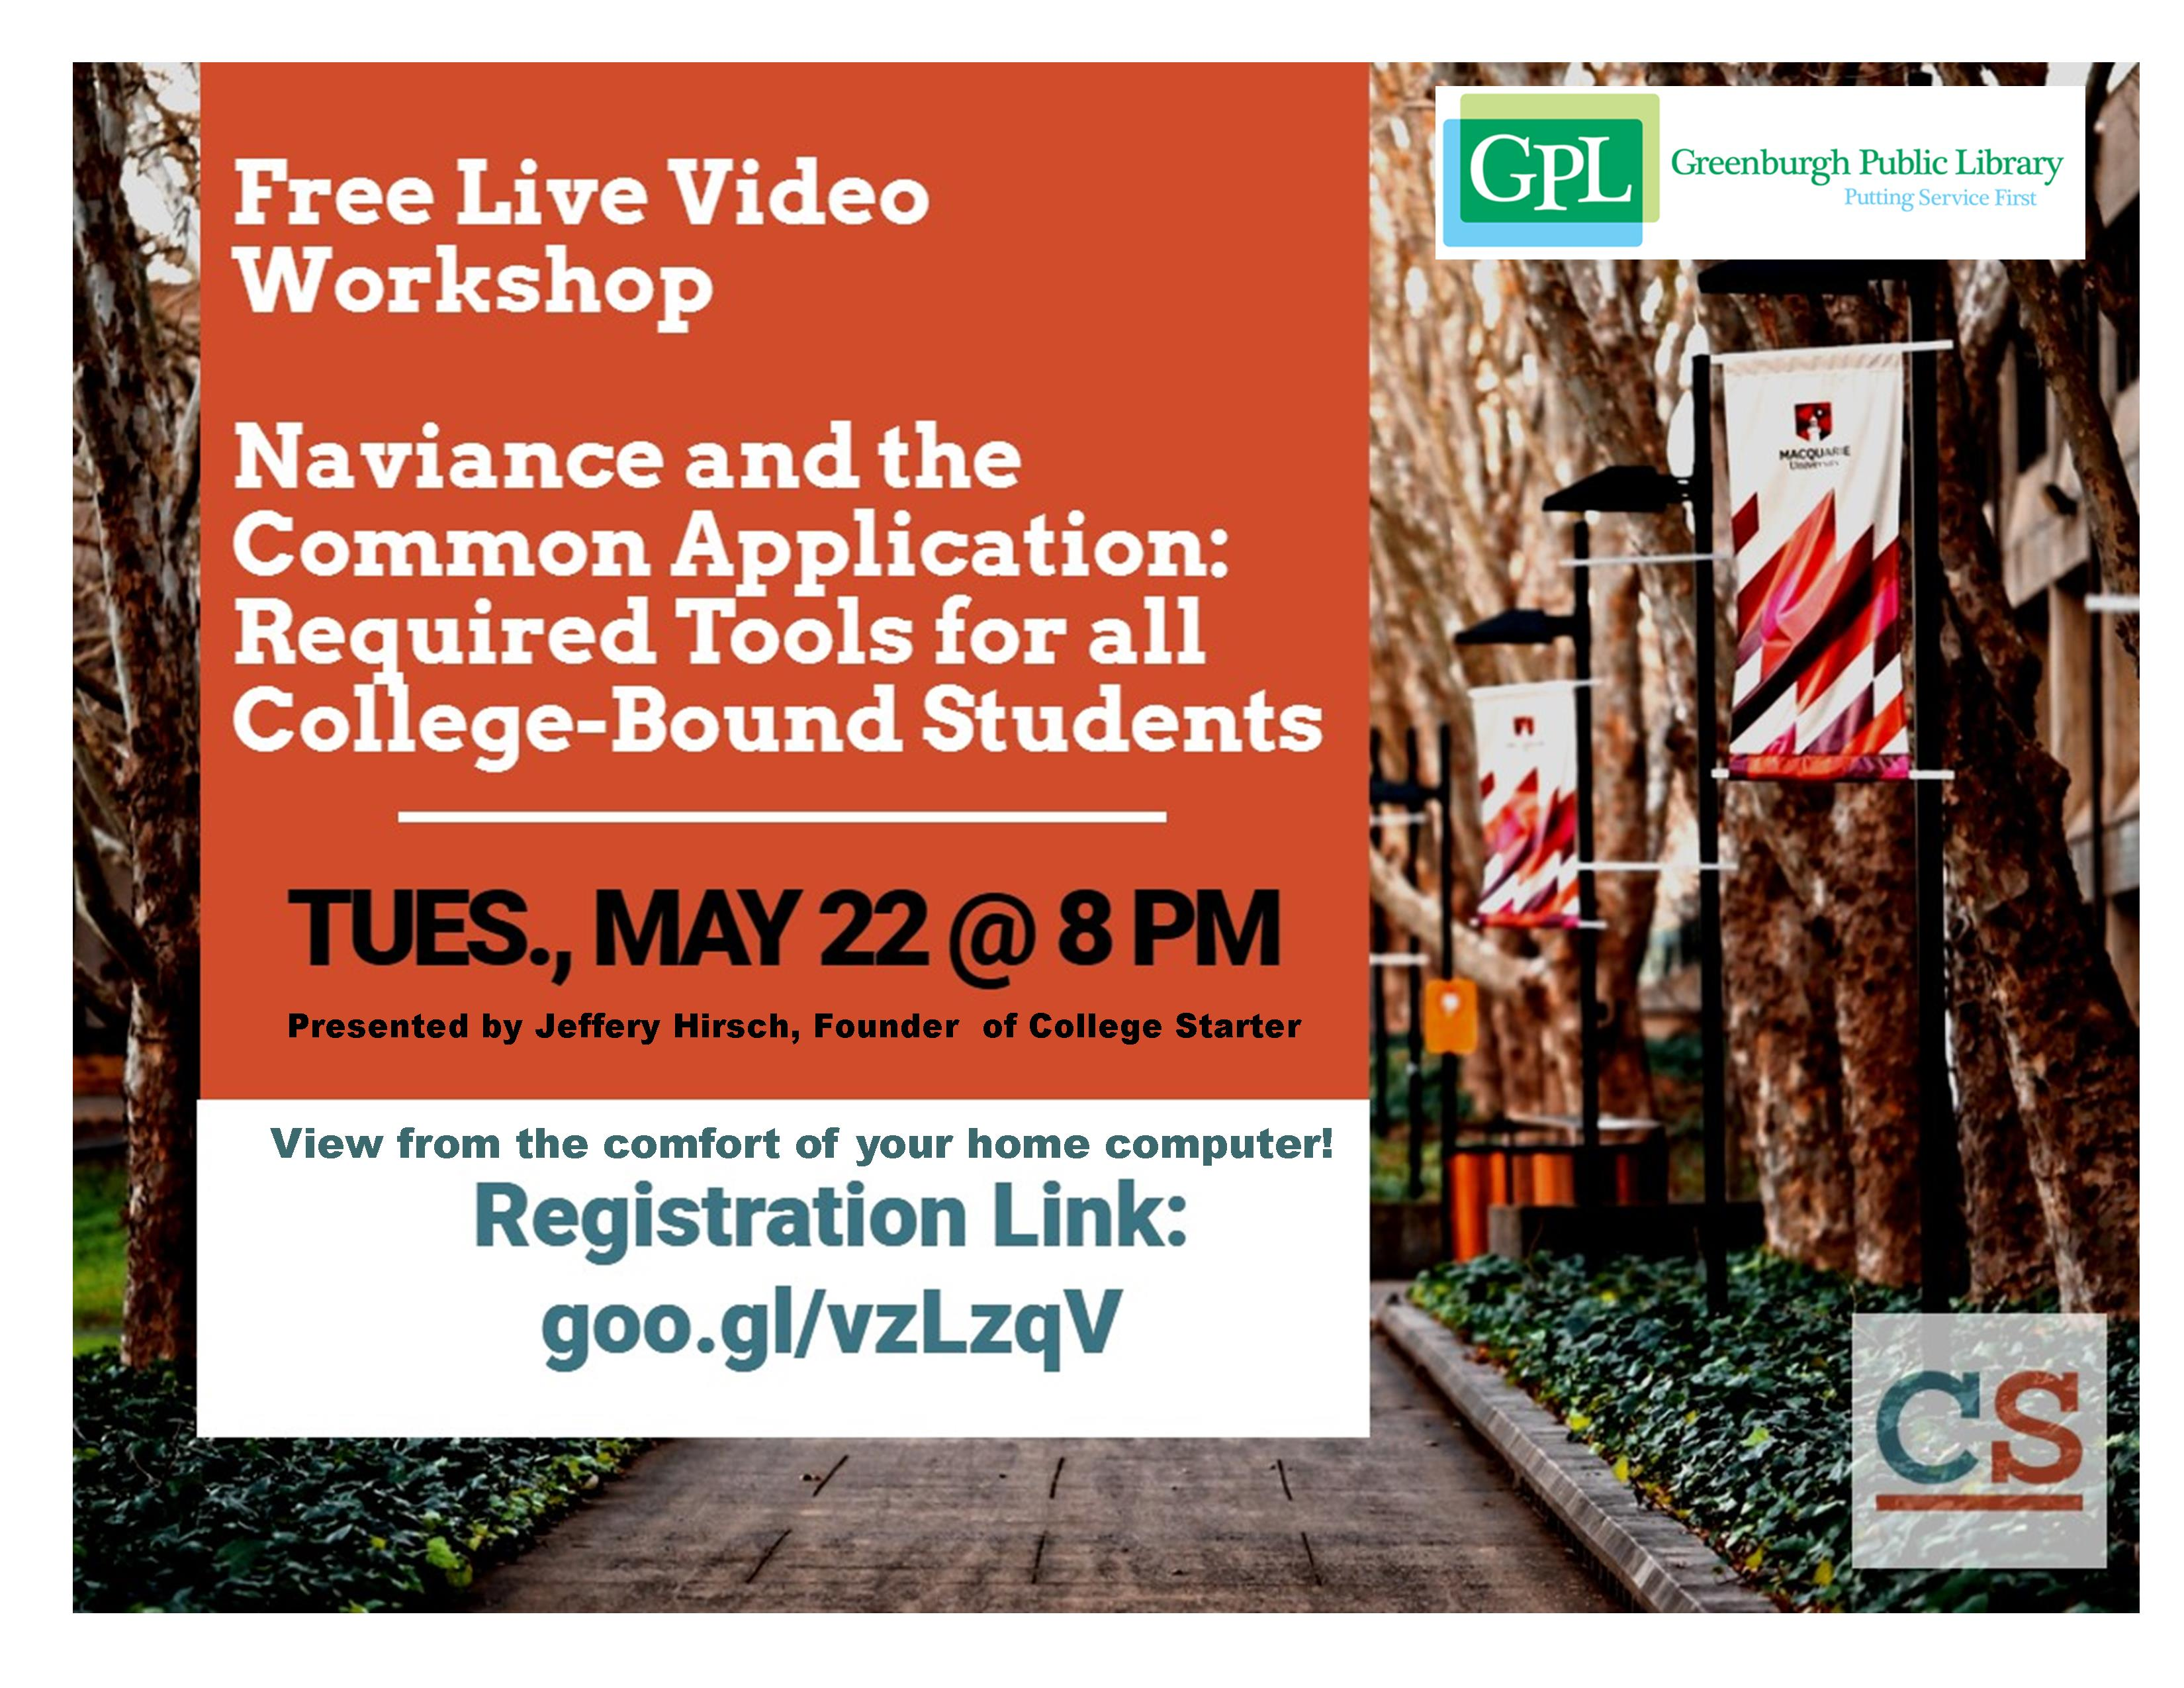 Webinar: Naviance and the Common Application: Required Tools for All College-Bound Students